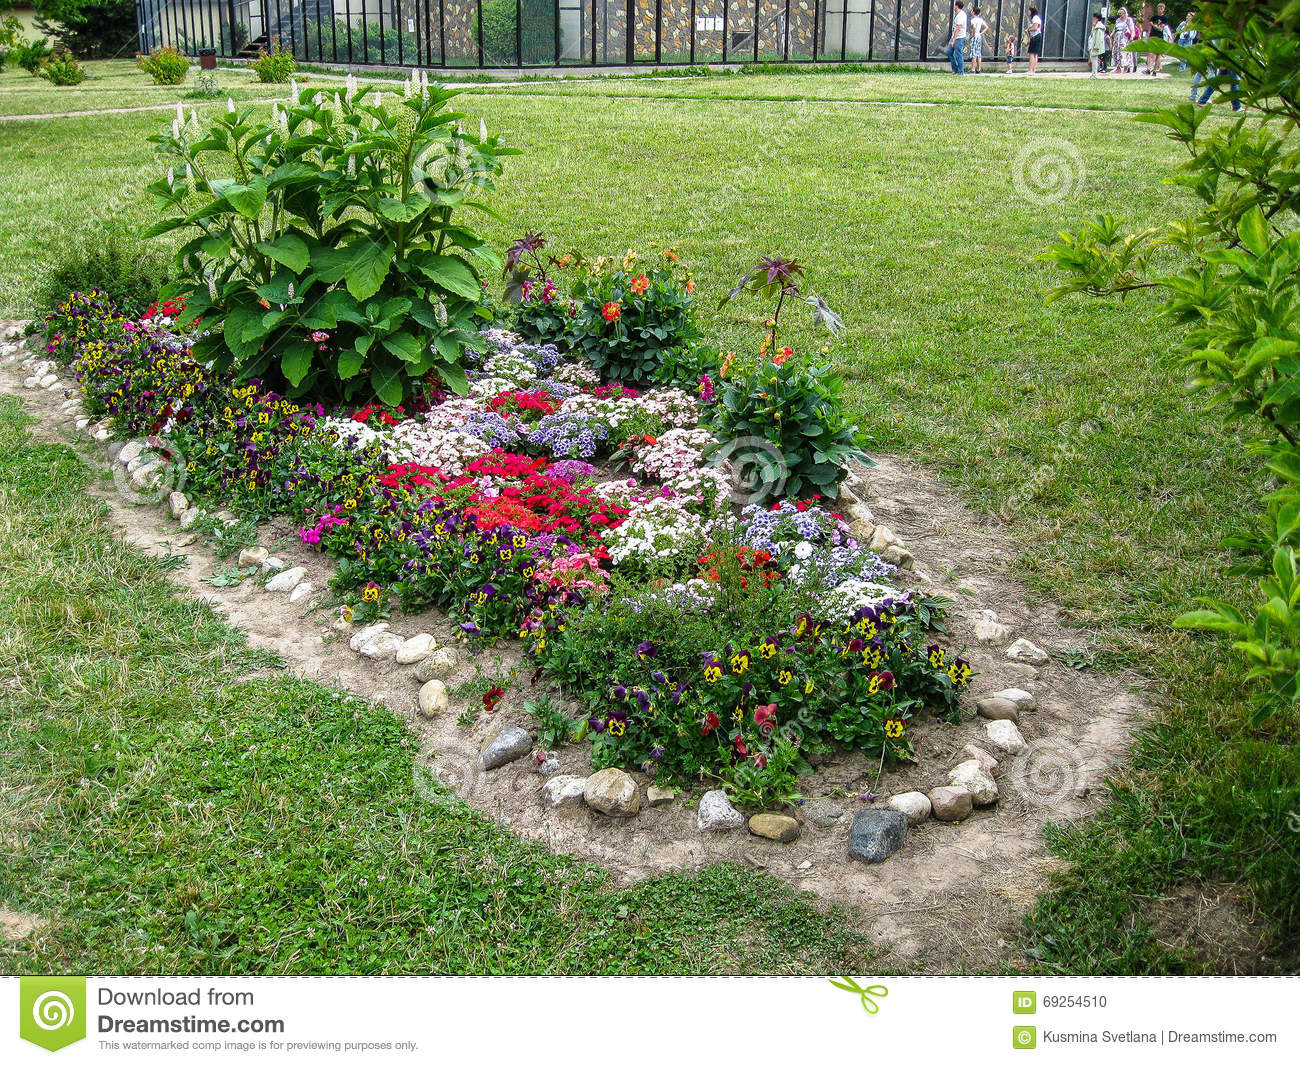 A flower bed in the garden stock photo image 69254510 for Ornamental trees for flower beds